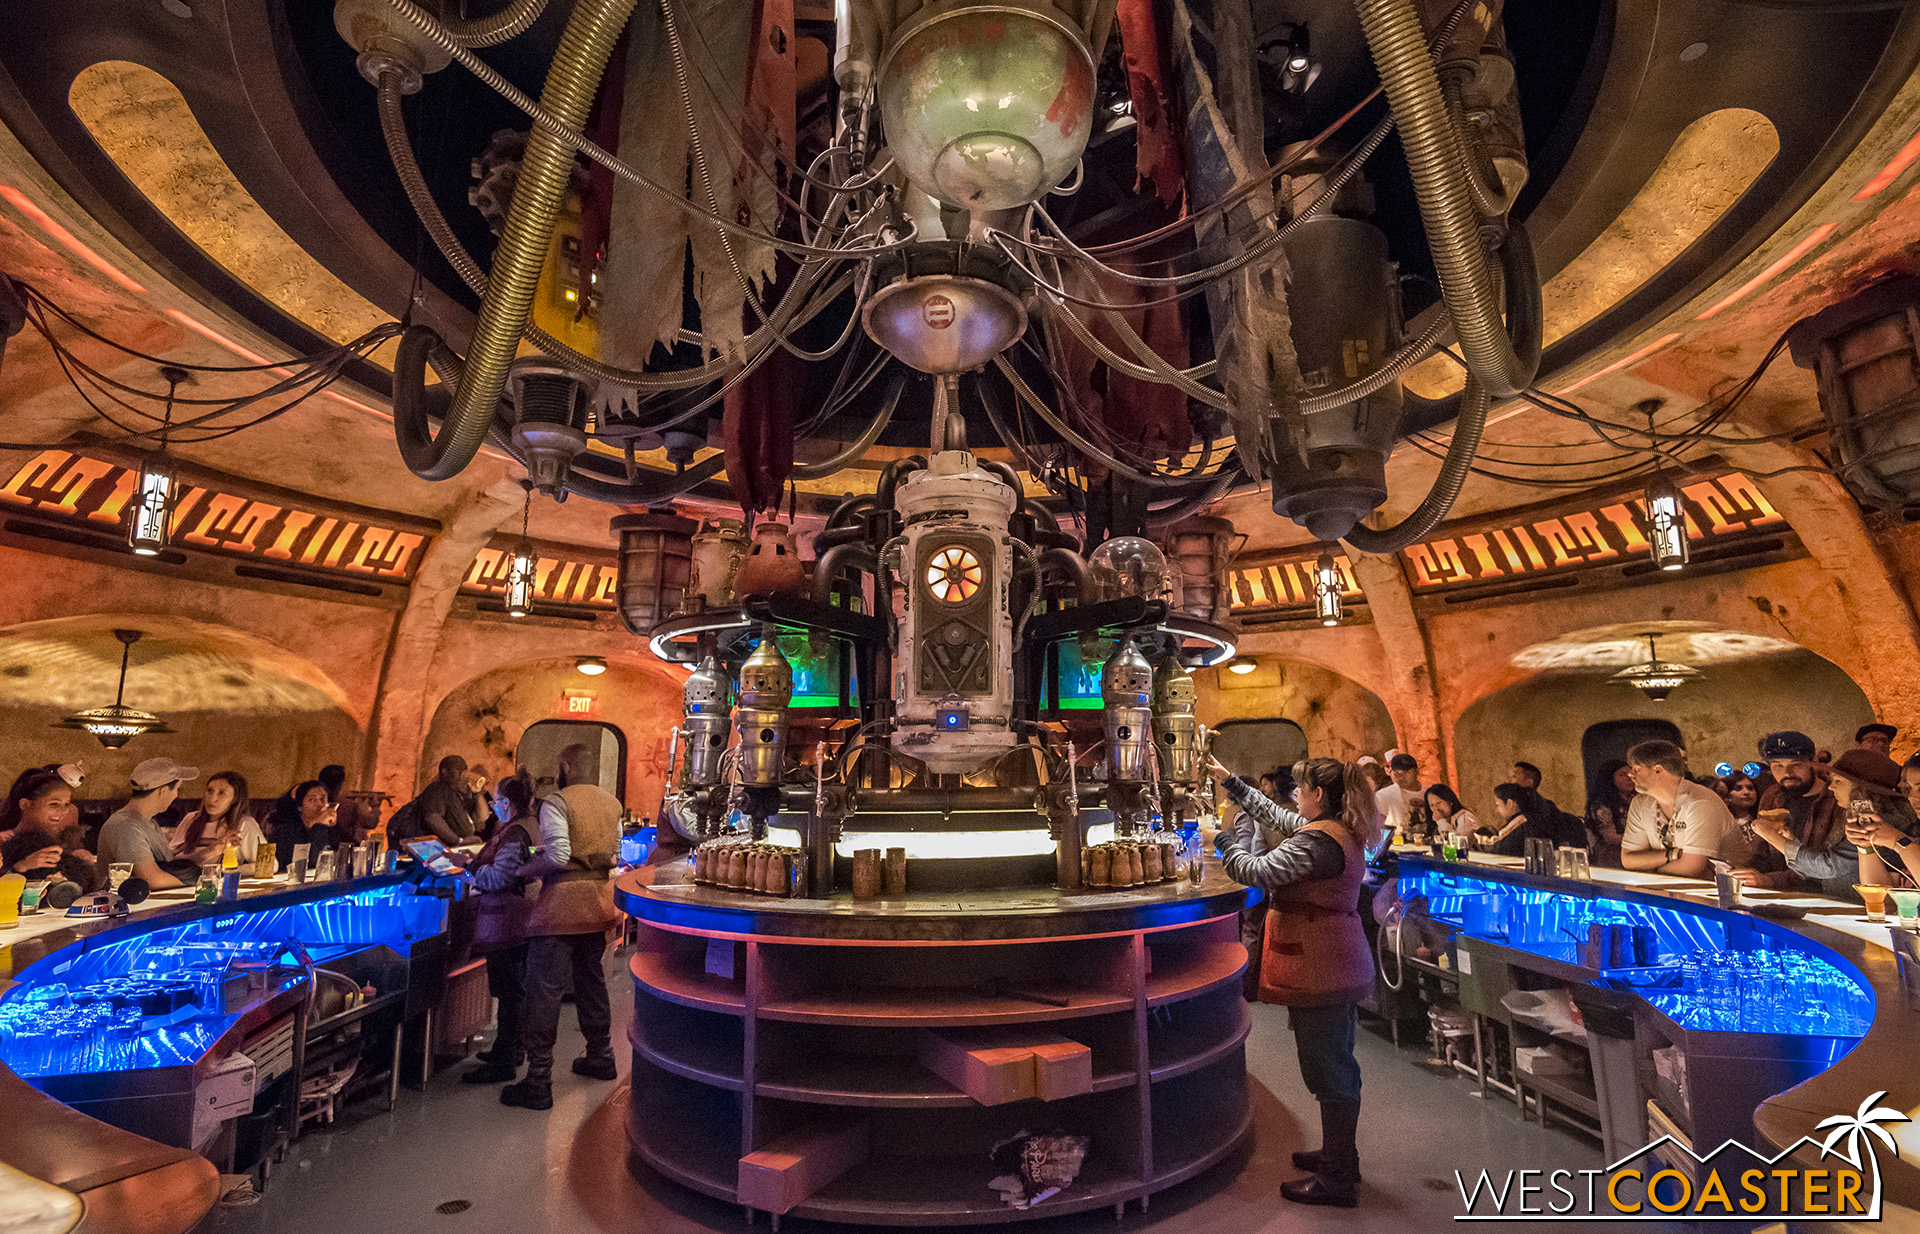 The scene at Oga's Cantina is lively and bustling, though you never know the types of characters you might bump into!